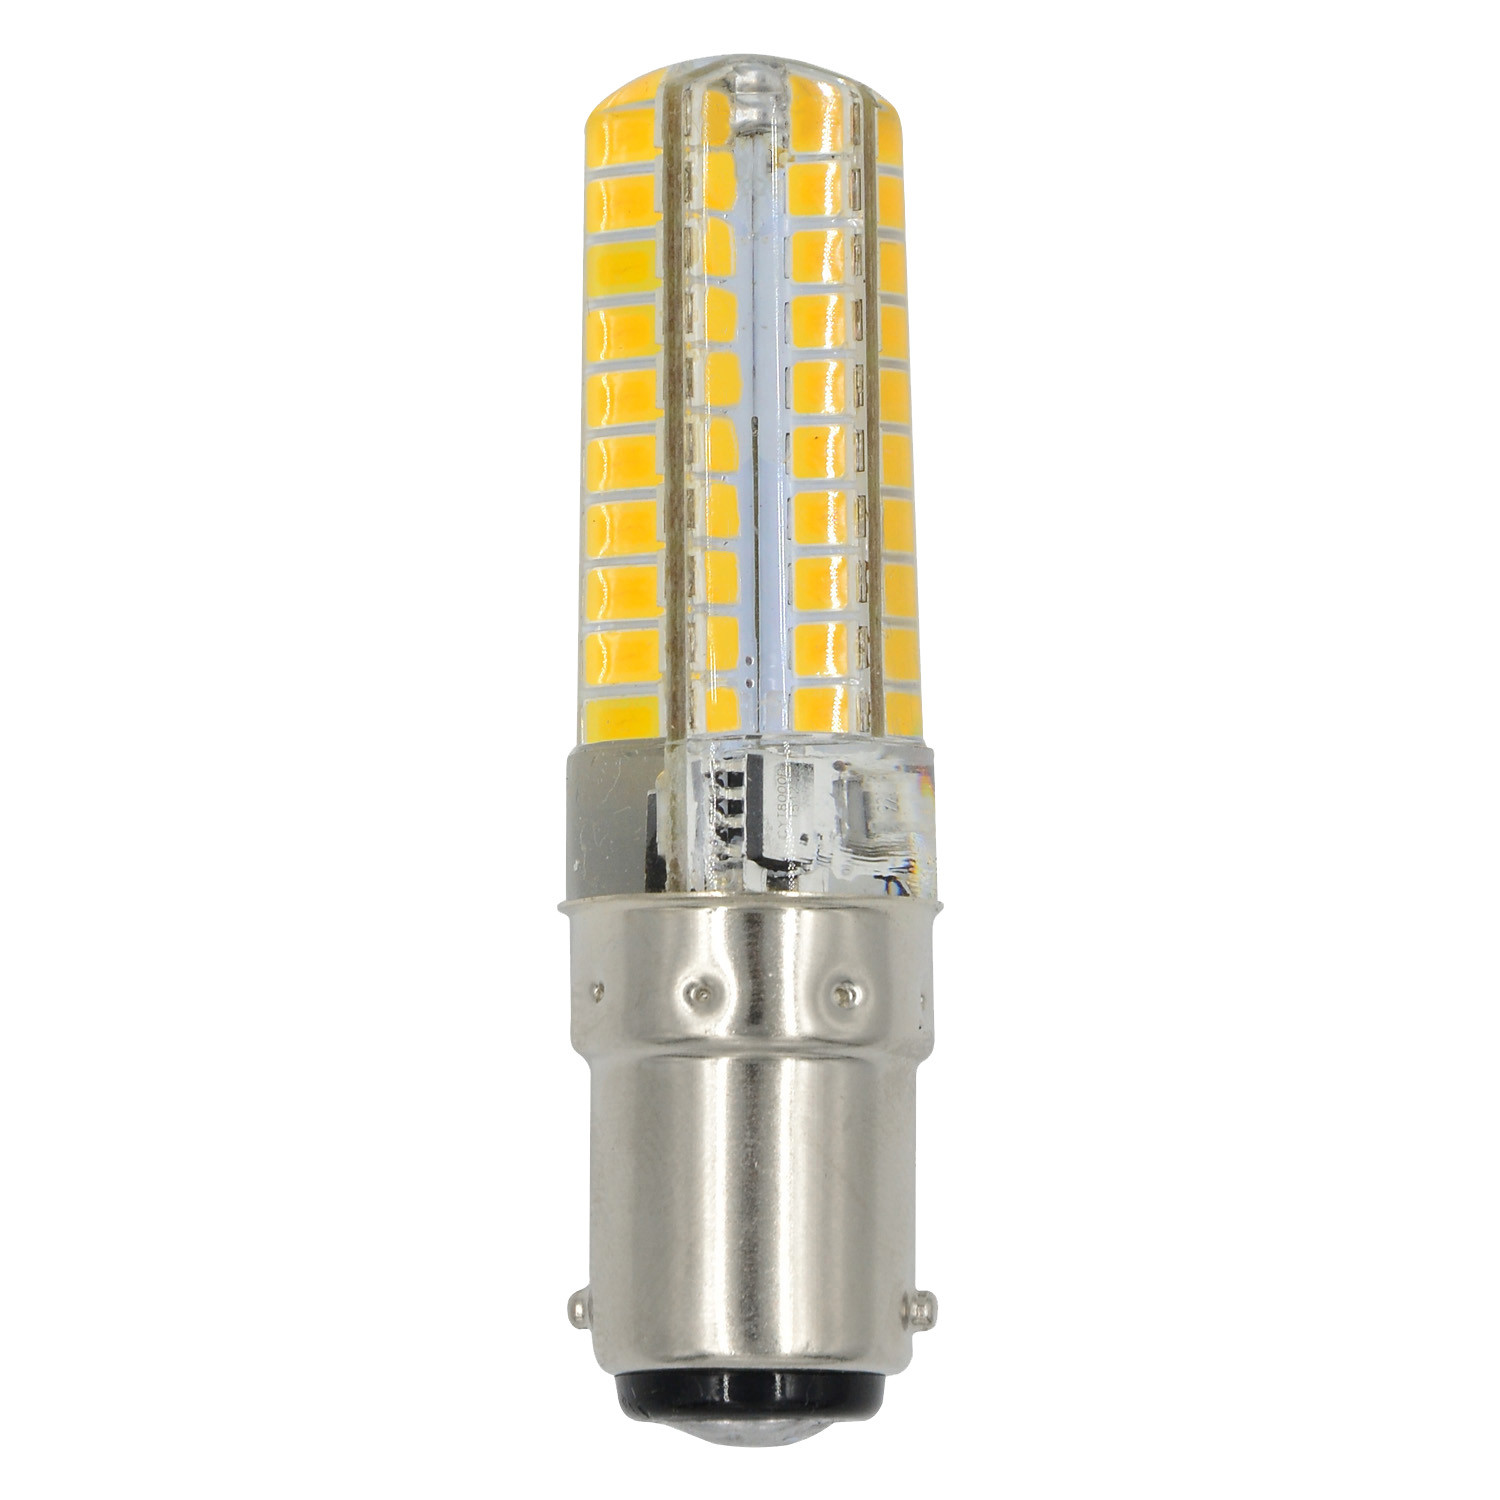 MENGS® B15D 7W LED Light 80x 2835 SMD 3-level Brightness LED Bulb Lamp In Warm White Energy-Saving Light